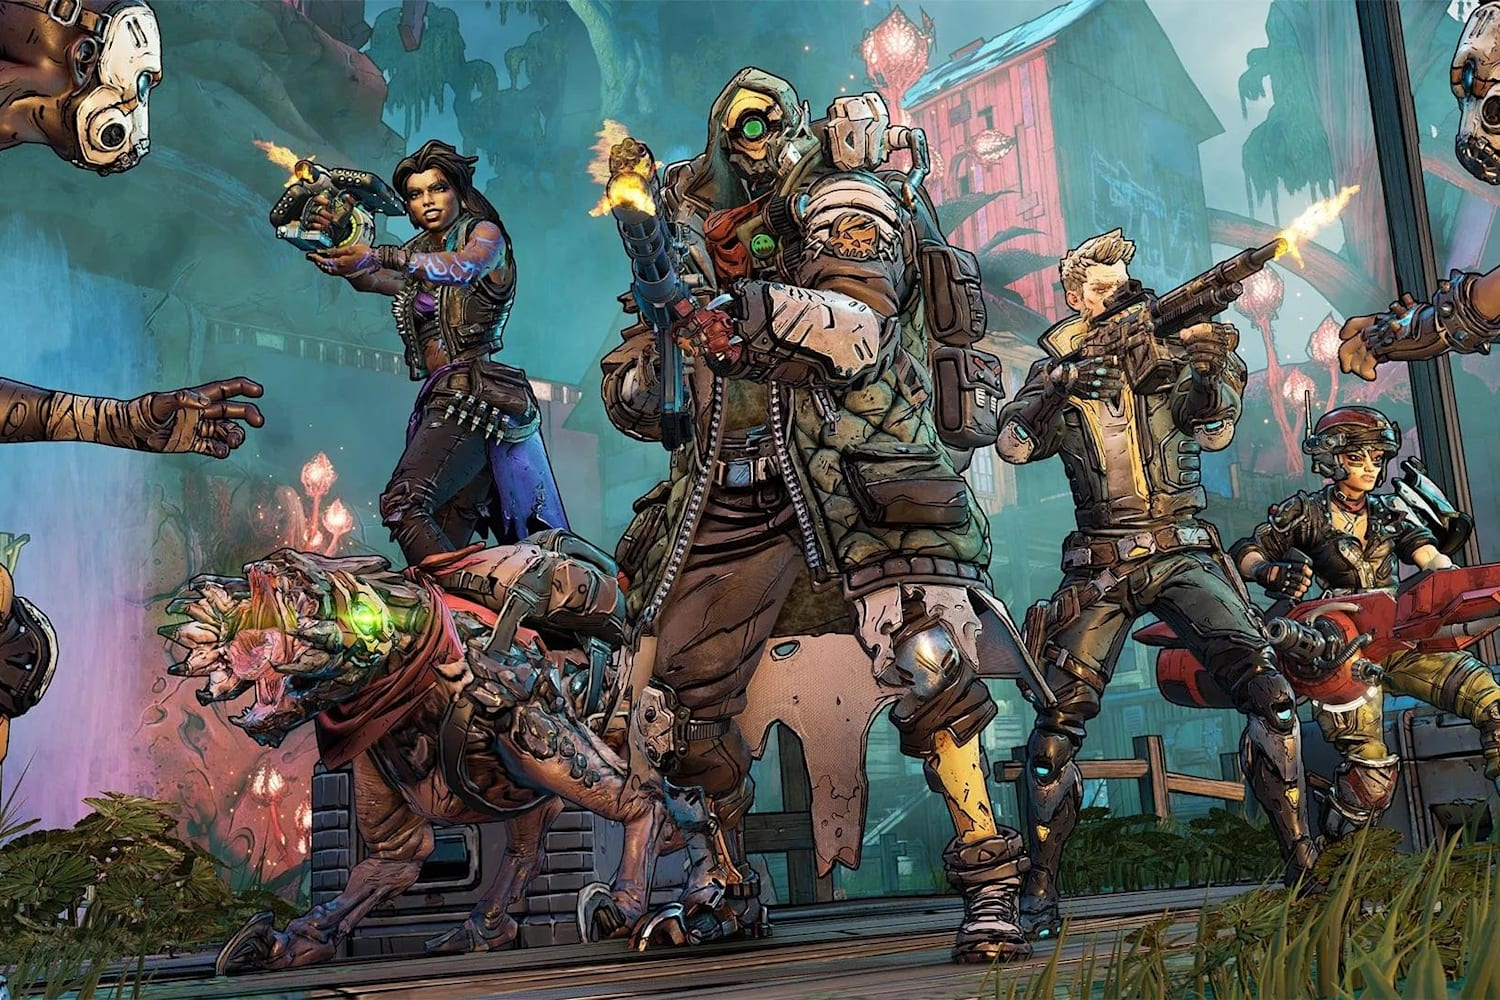 Borderlands 3 Character Guide: How to Choose the Best